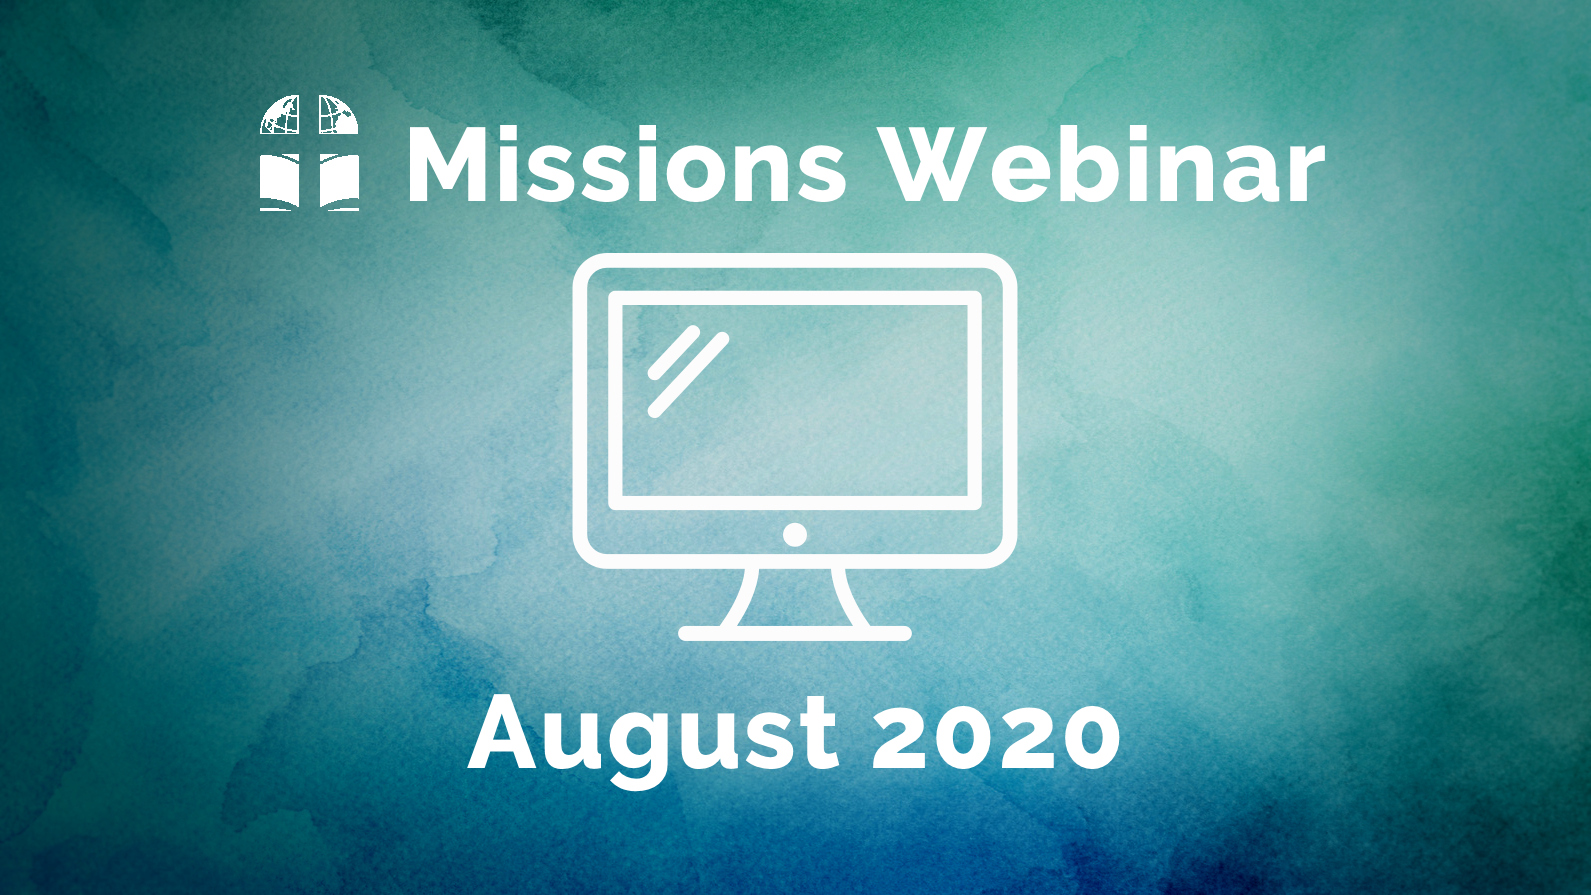 Missions Webinar: Session 1 now available